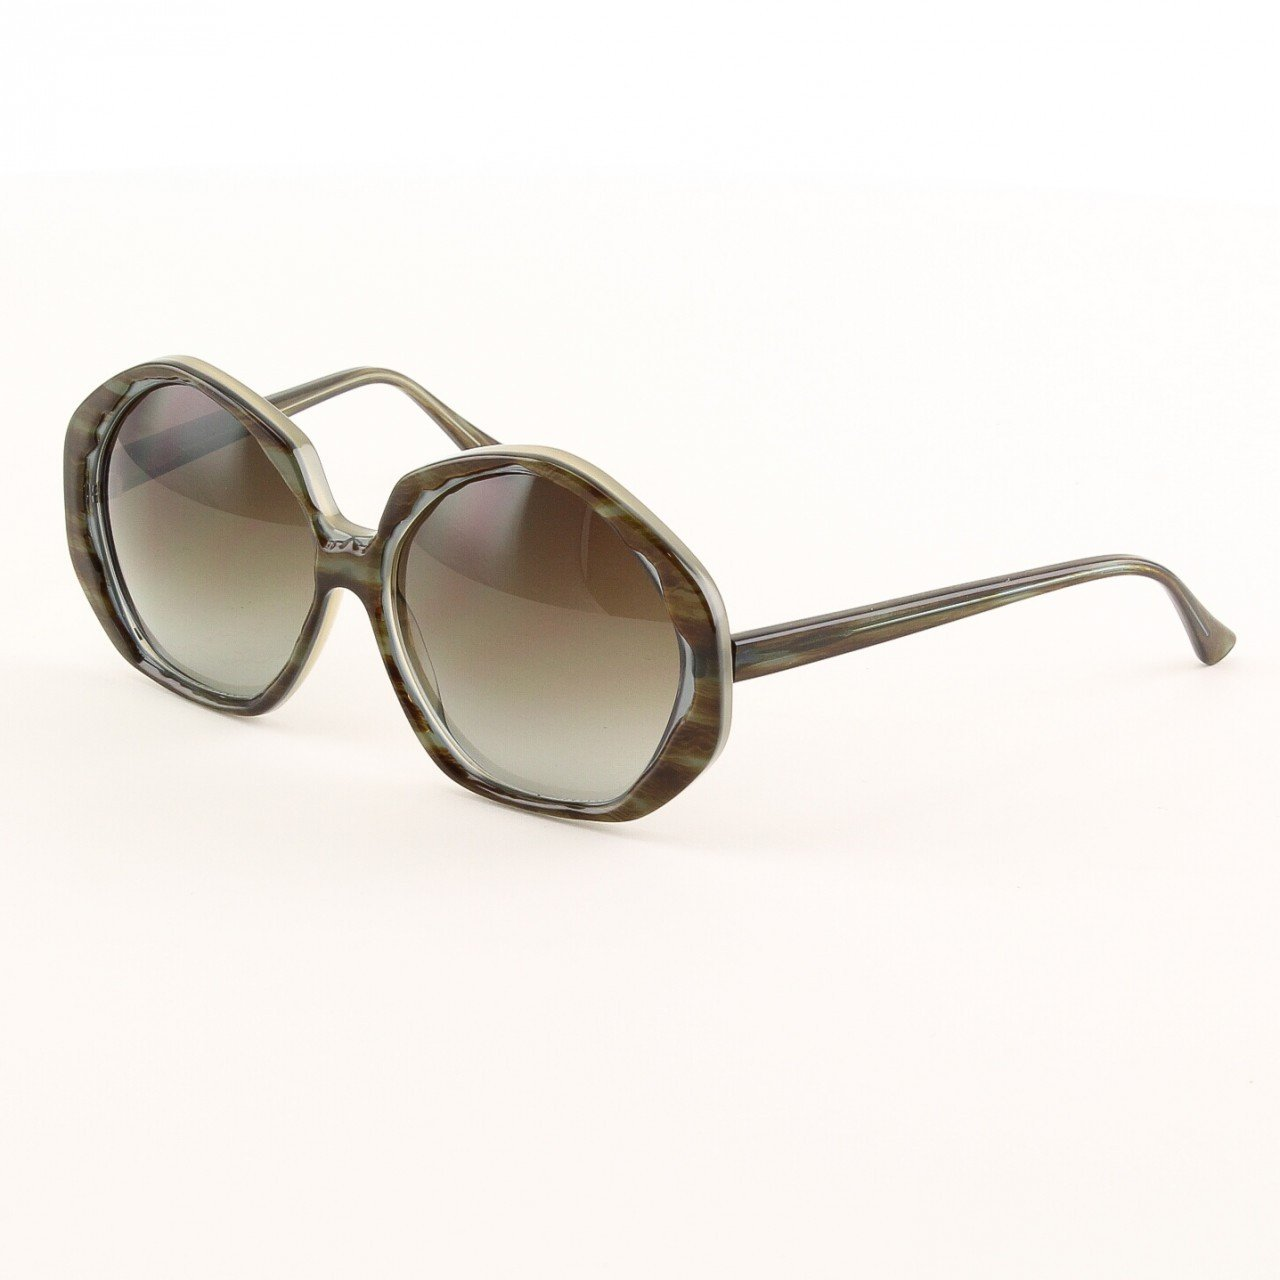 Marni MA157 Sunglasses Col. 05 Oversized Olive Brown Tortoise with Brown Lenses